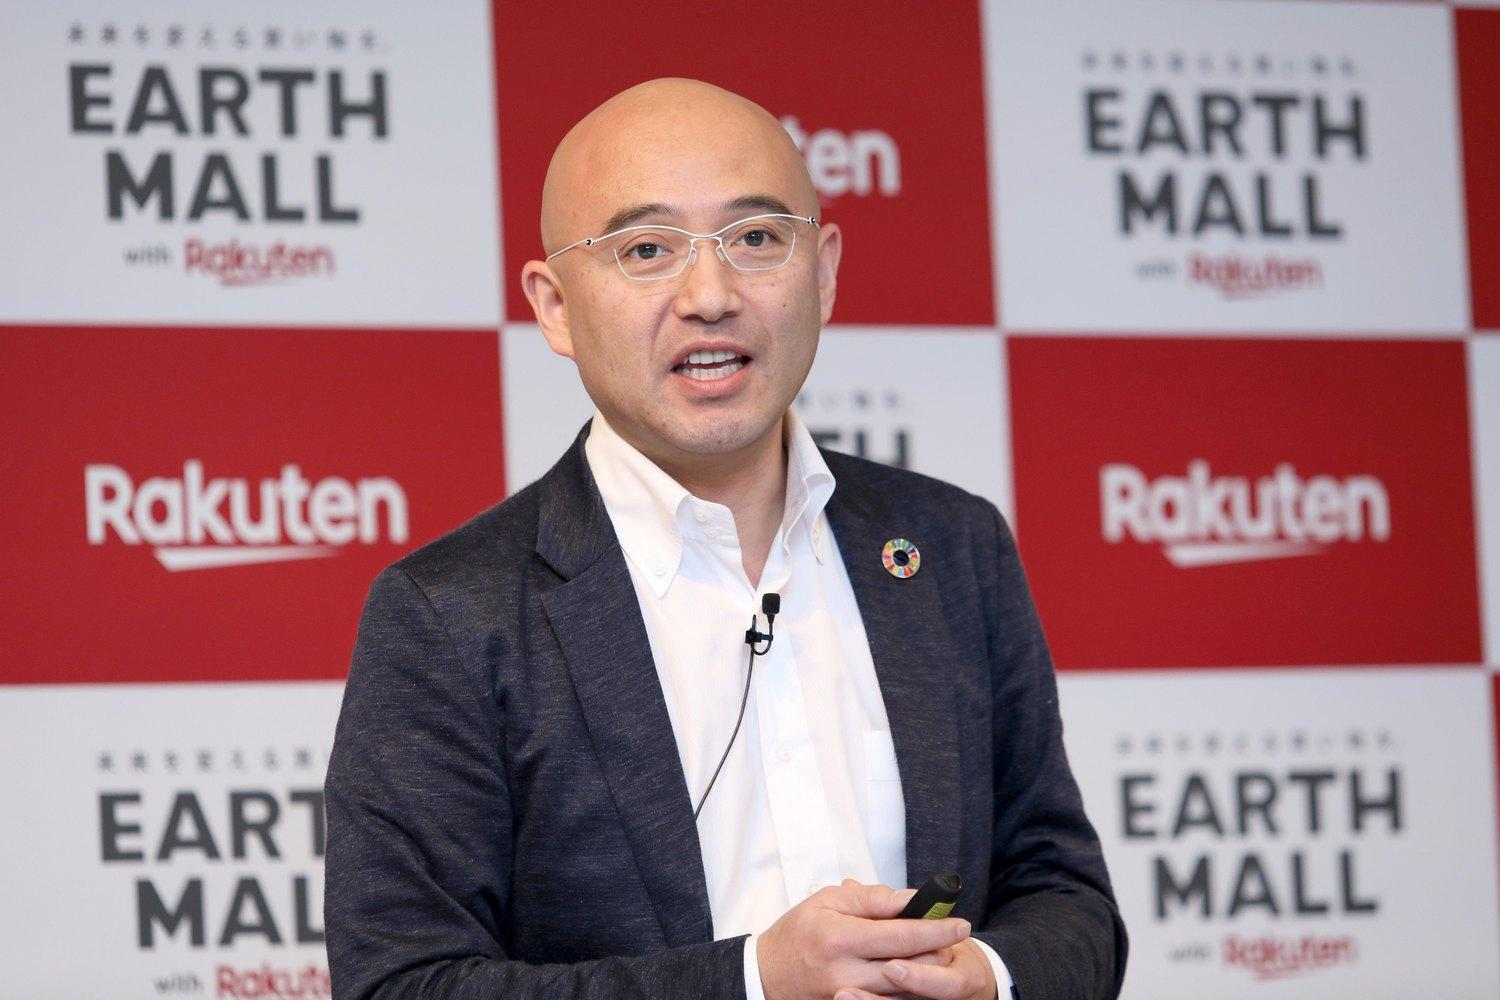 """It's not enough to simply try and change consumption. To change society, we need to change the environment for consumers. And if we can change society, the economy will change too,"" said Rakuten co-founder and Chief People Officer Masatada ""Seichu"" Kobayashi."